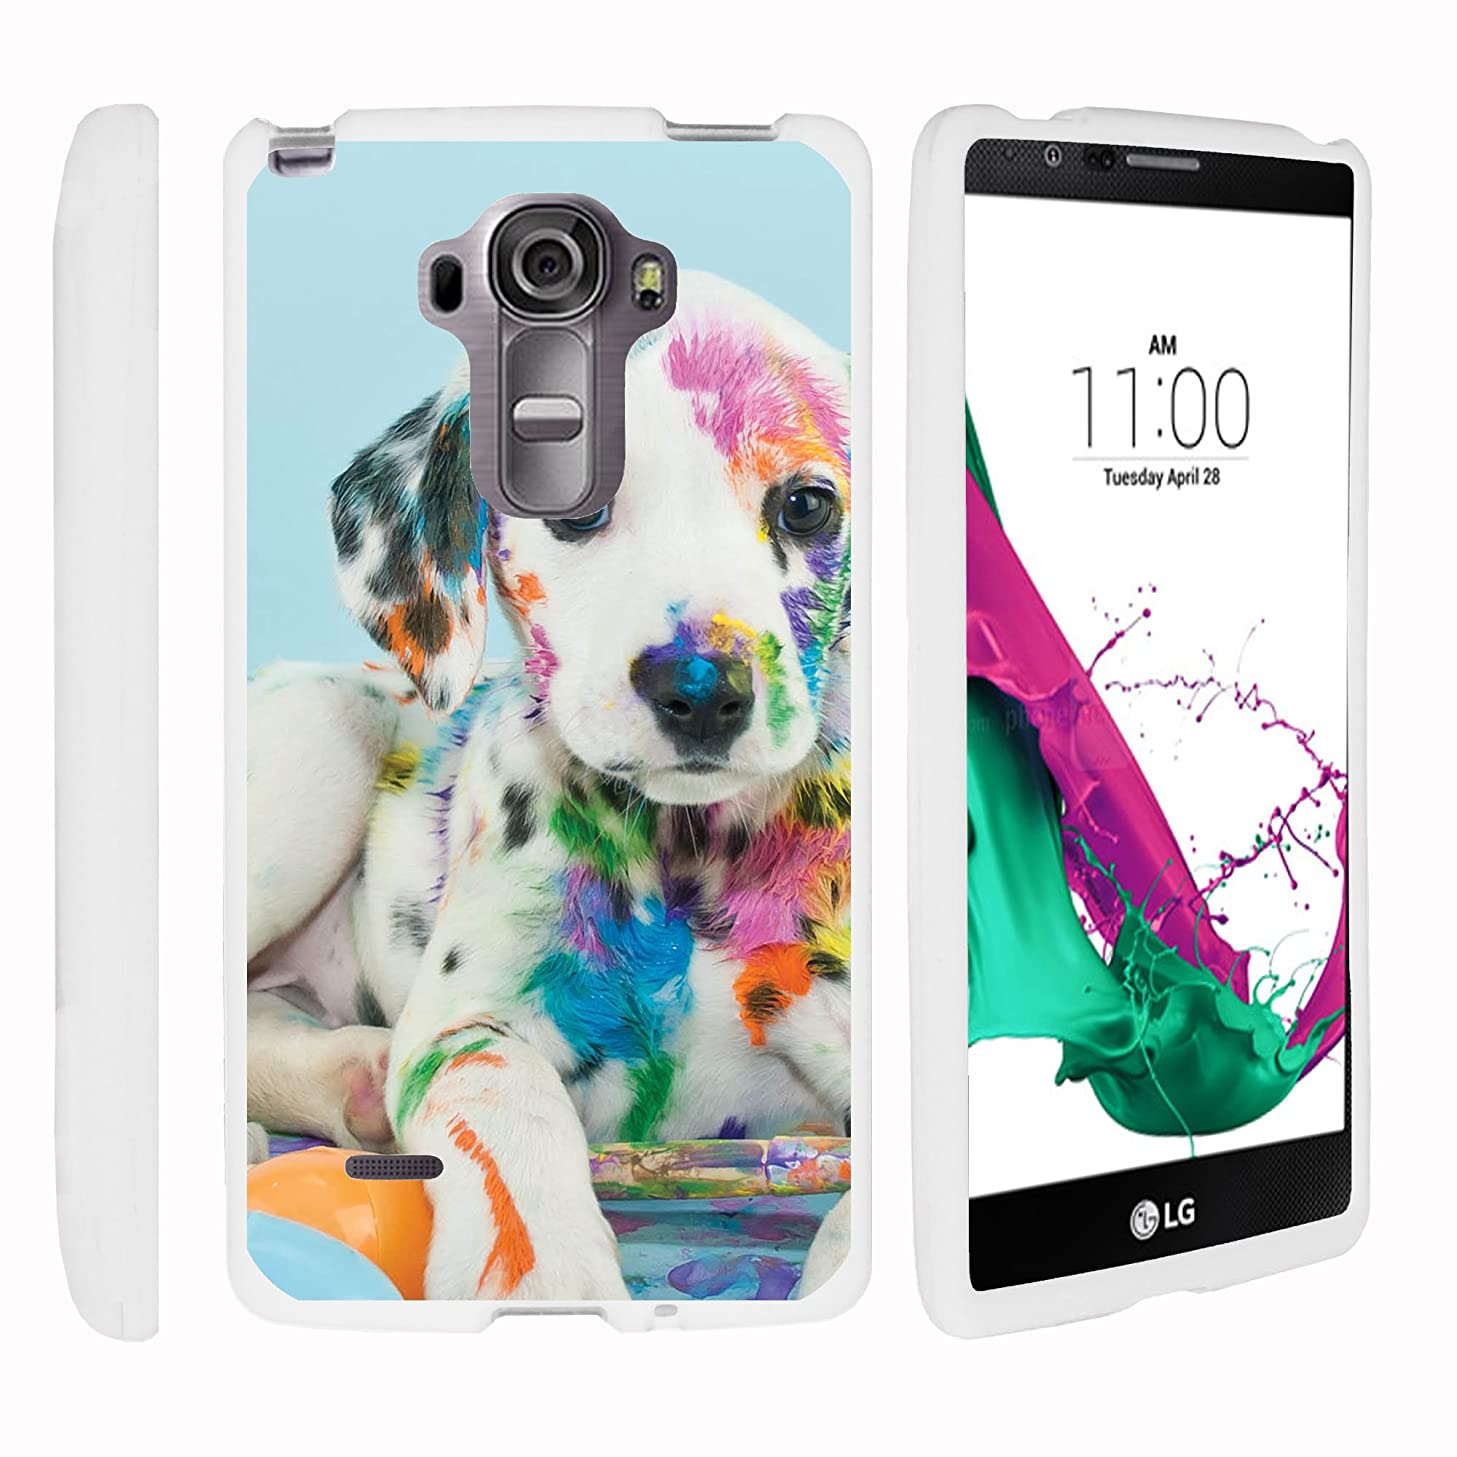 MINITURTLE Compatible with LG G Vista 2 H740 White Phone Case, Snap on Hard Cell Phone Cover Animal Artwork Colorful Puppy